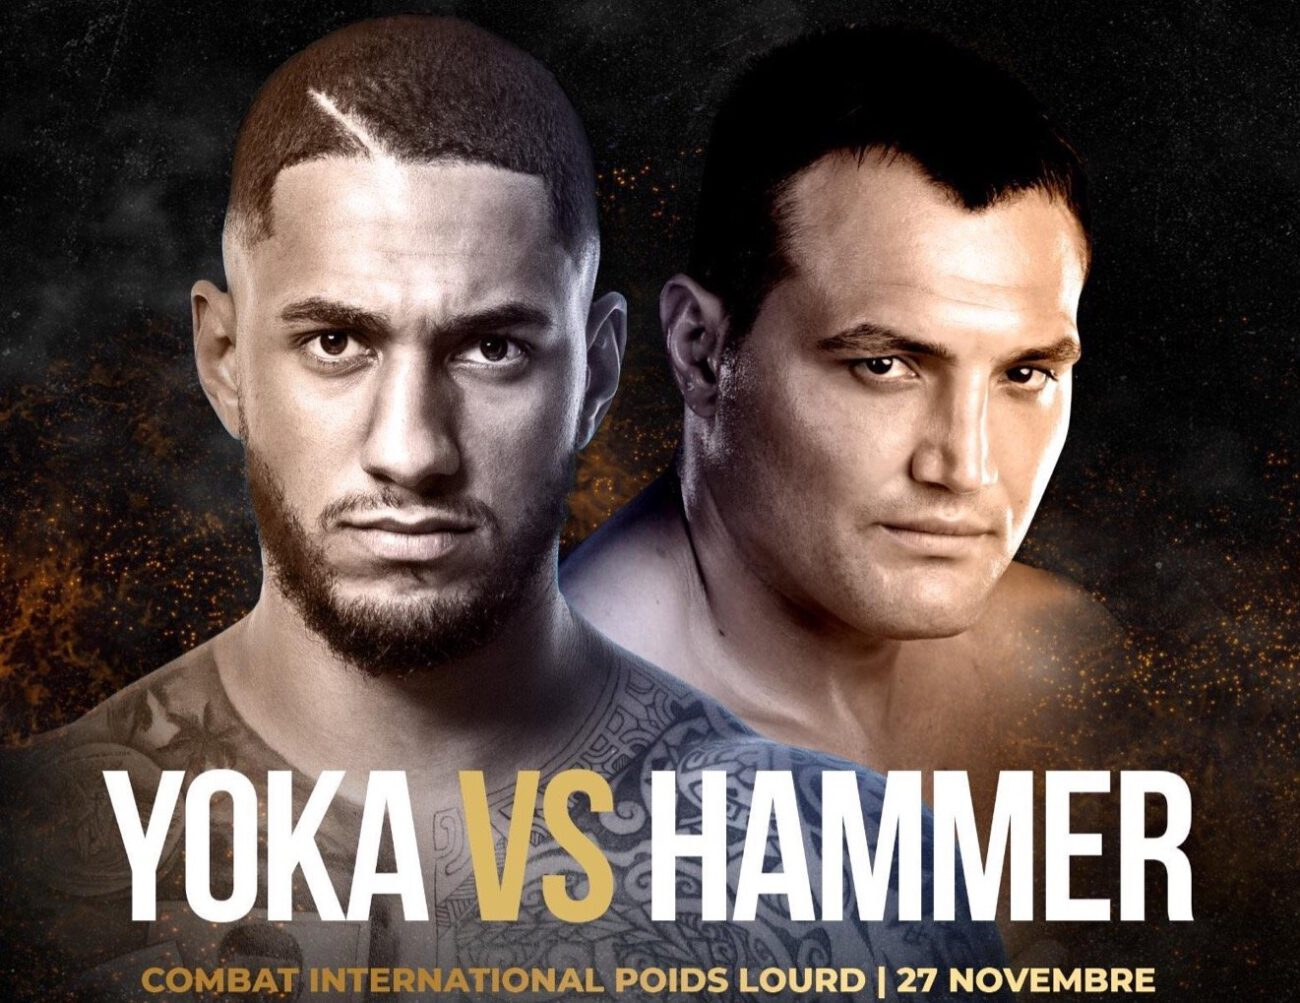 Yoka vs Hammer - ESPN+ - Nov. 27 @ H Arena in Nantes, France